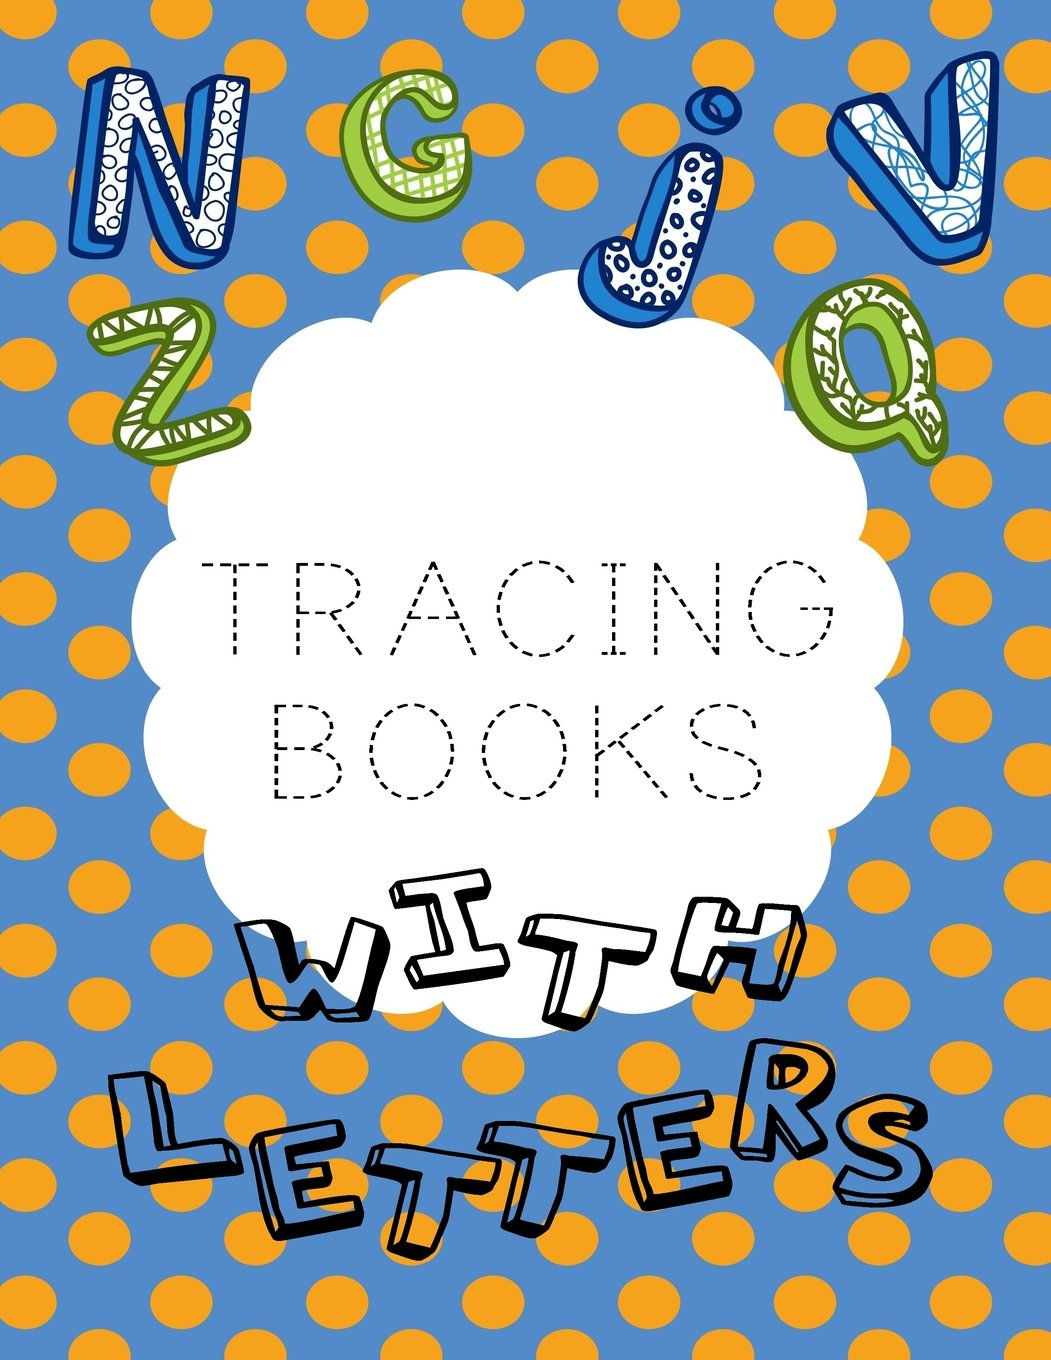 "Tracing Books With Letters: Letter Tracing Practice Book For Preschoolers, Kindergarten (Printing For Kids Ages 3-5)(1"" Lines, Dashed) PDF"